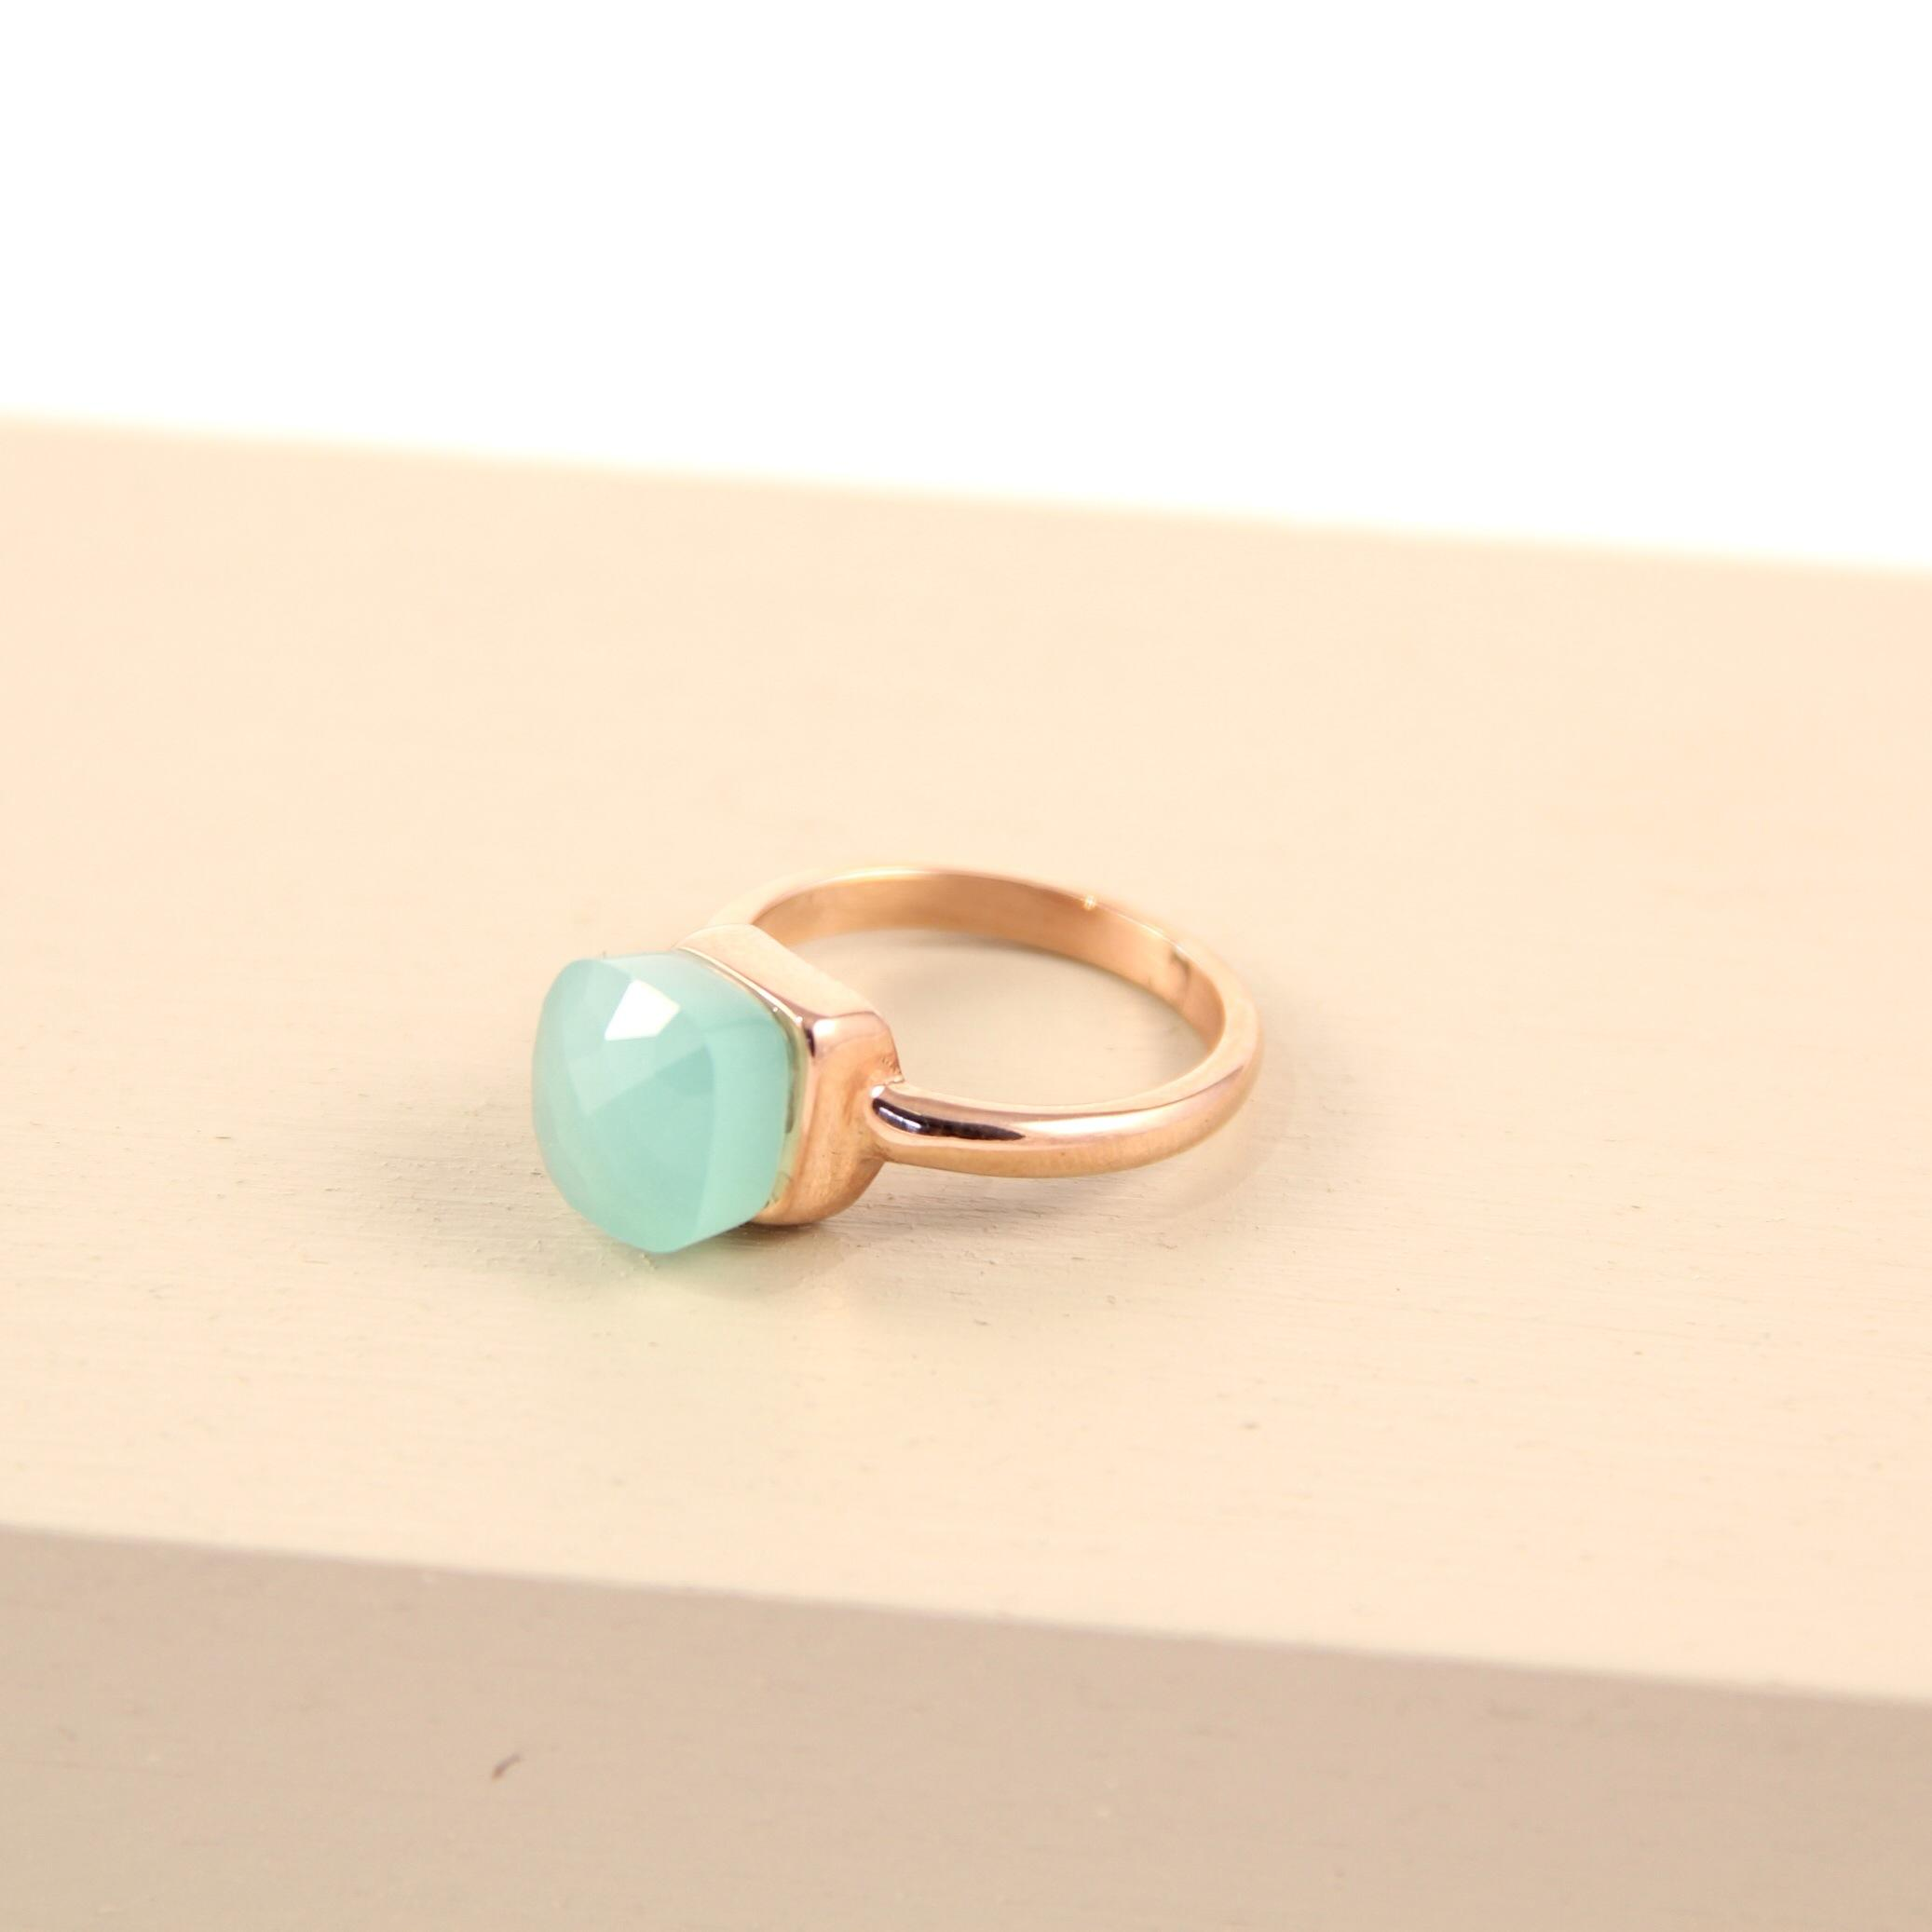 Ring, roségolden